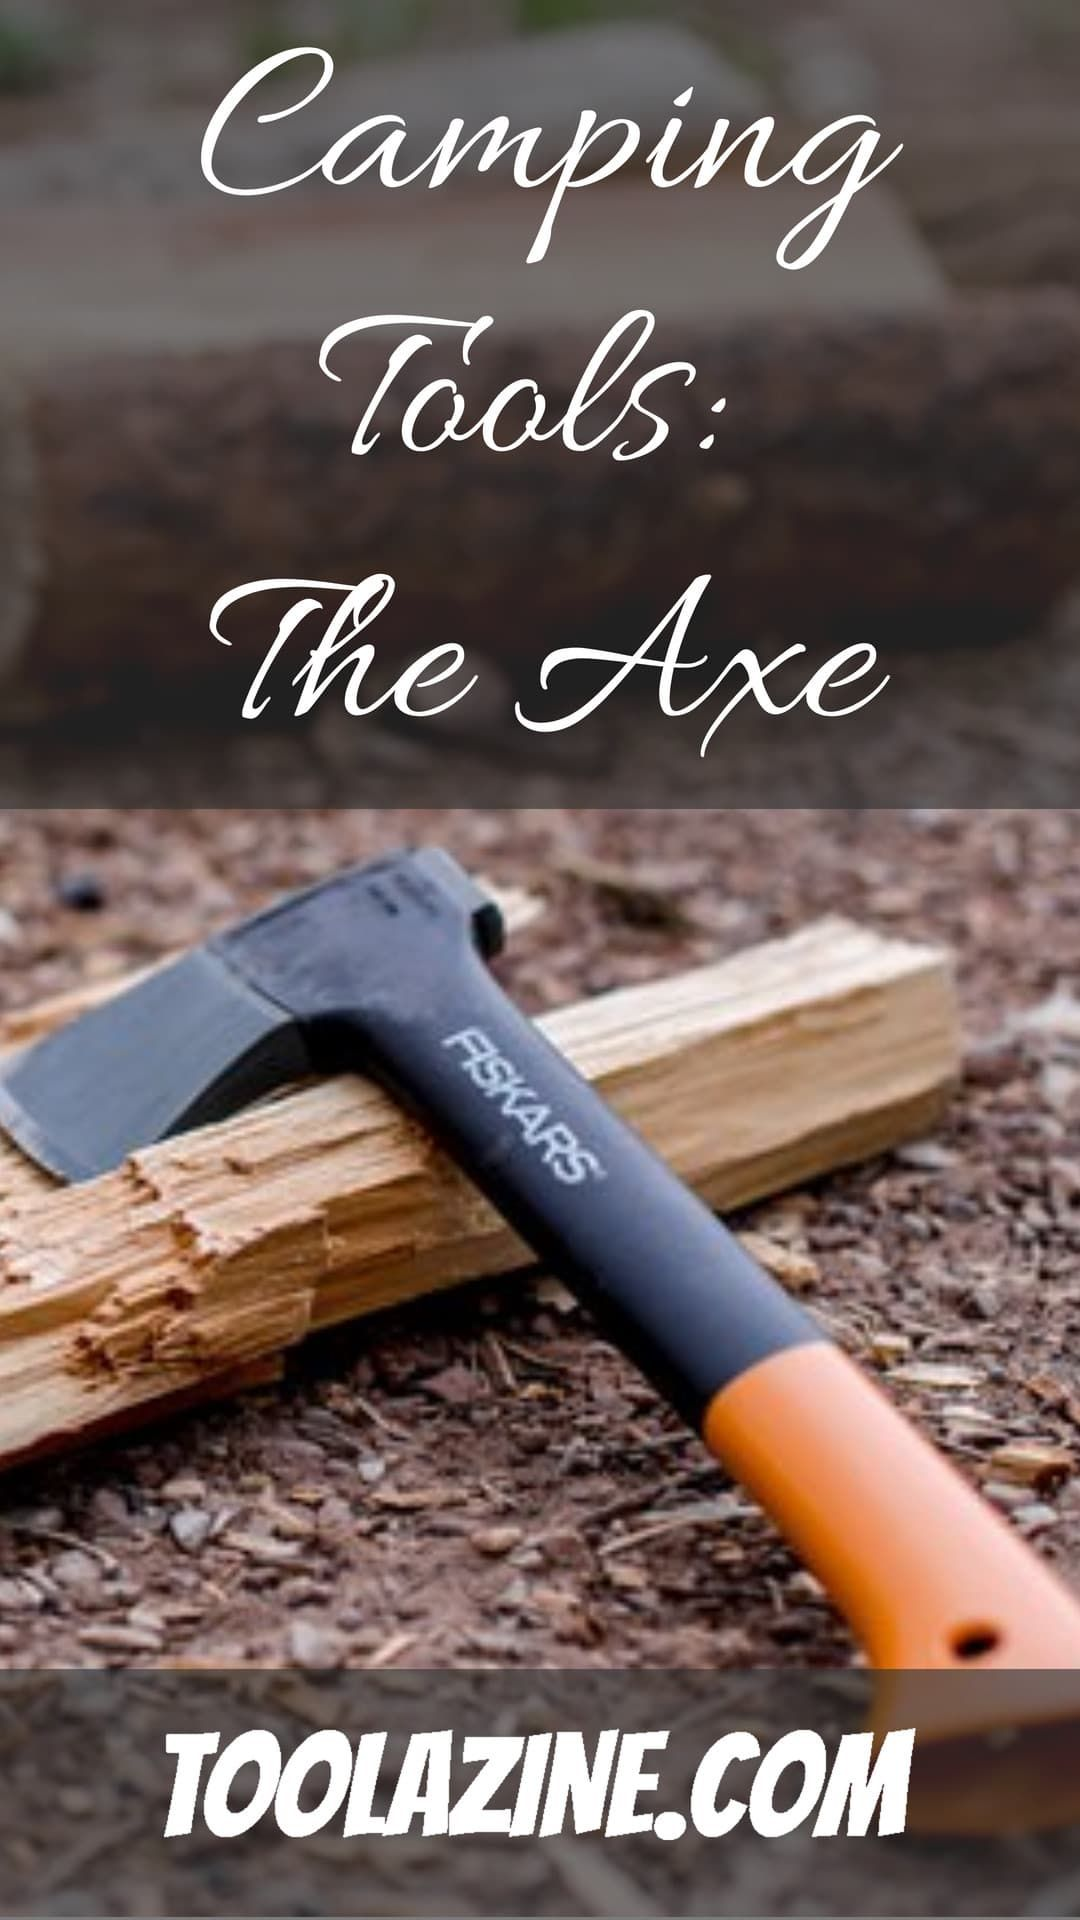 11 Best Axes & Hatchets For Camping, Hiking & Backpacking